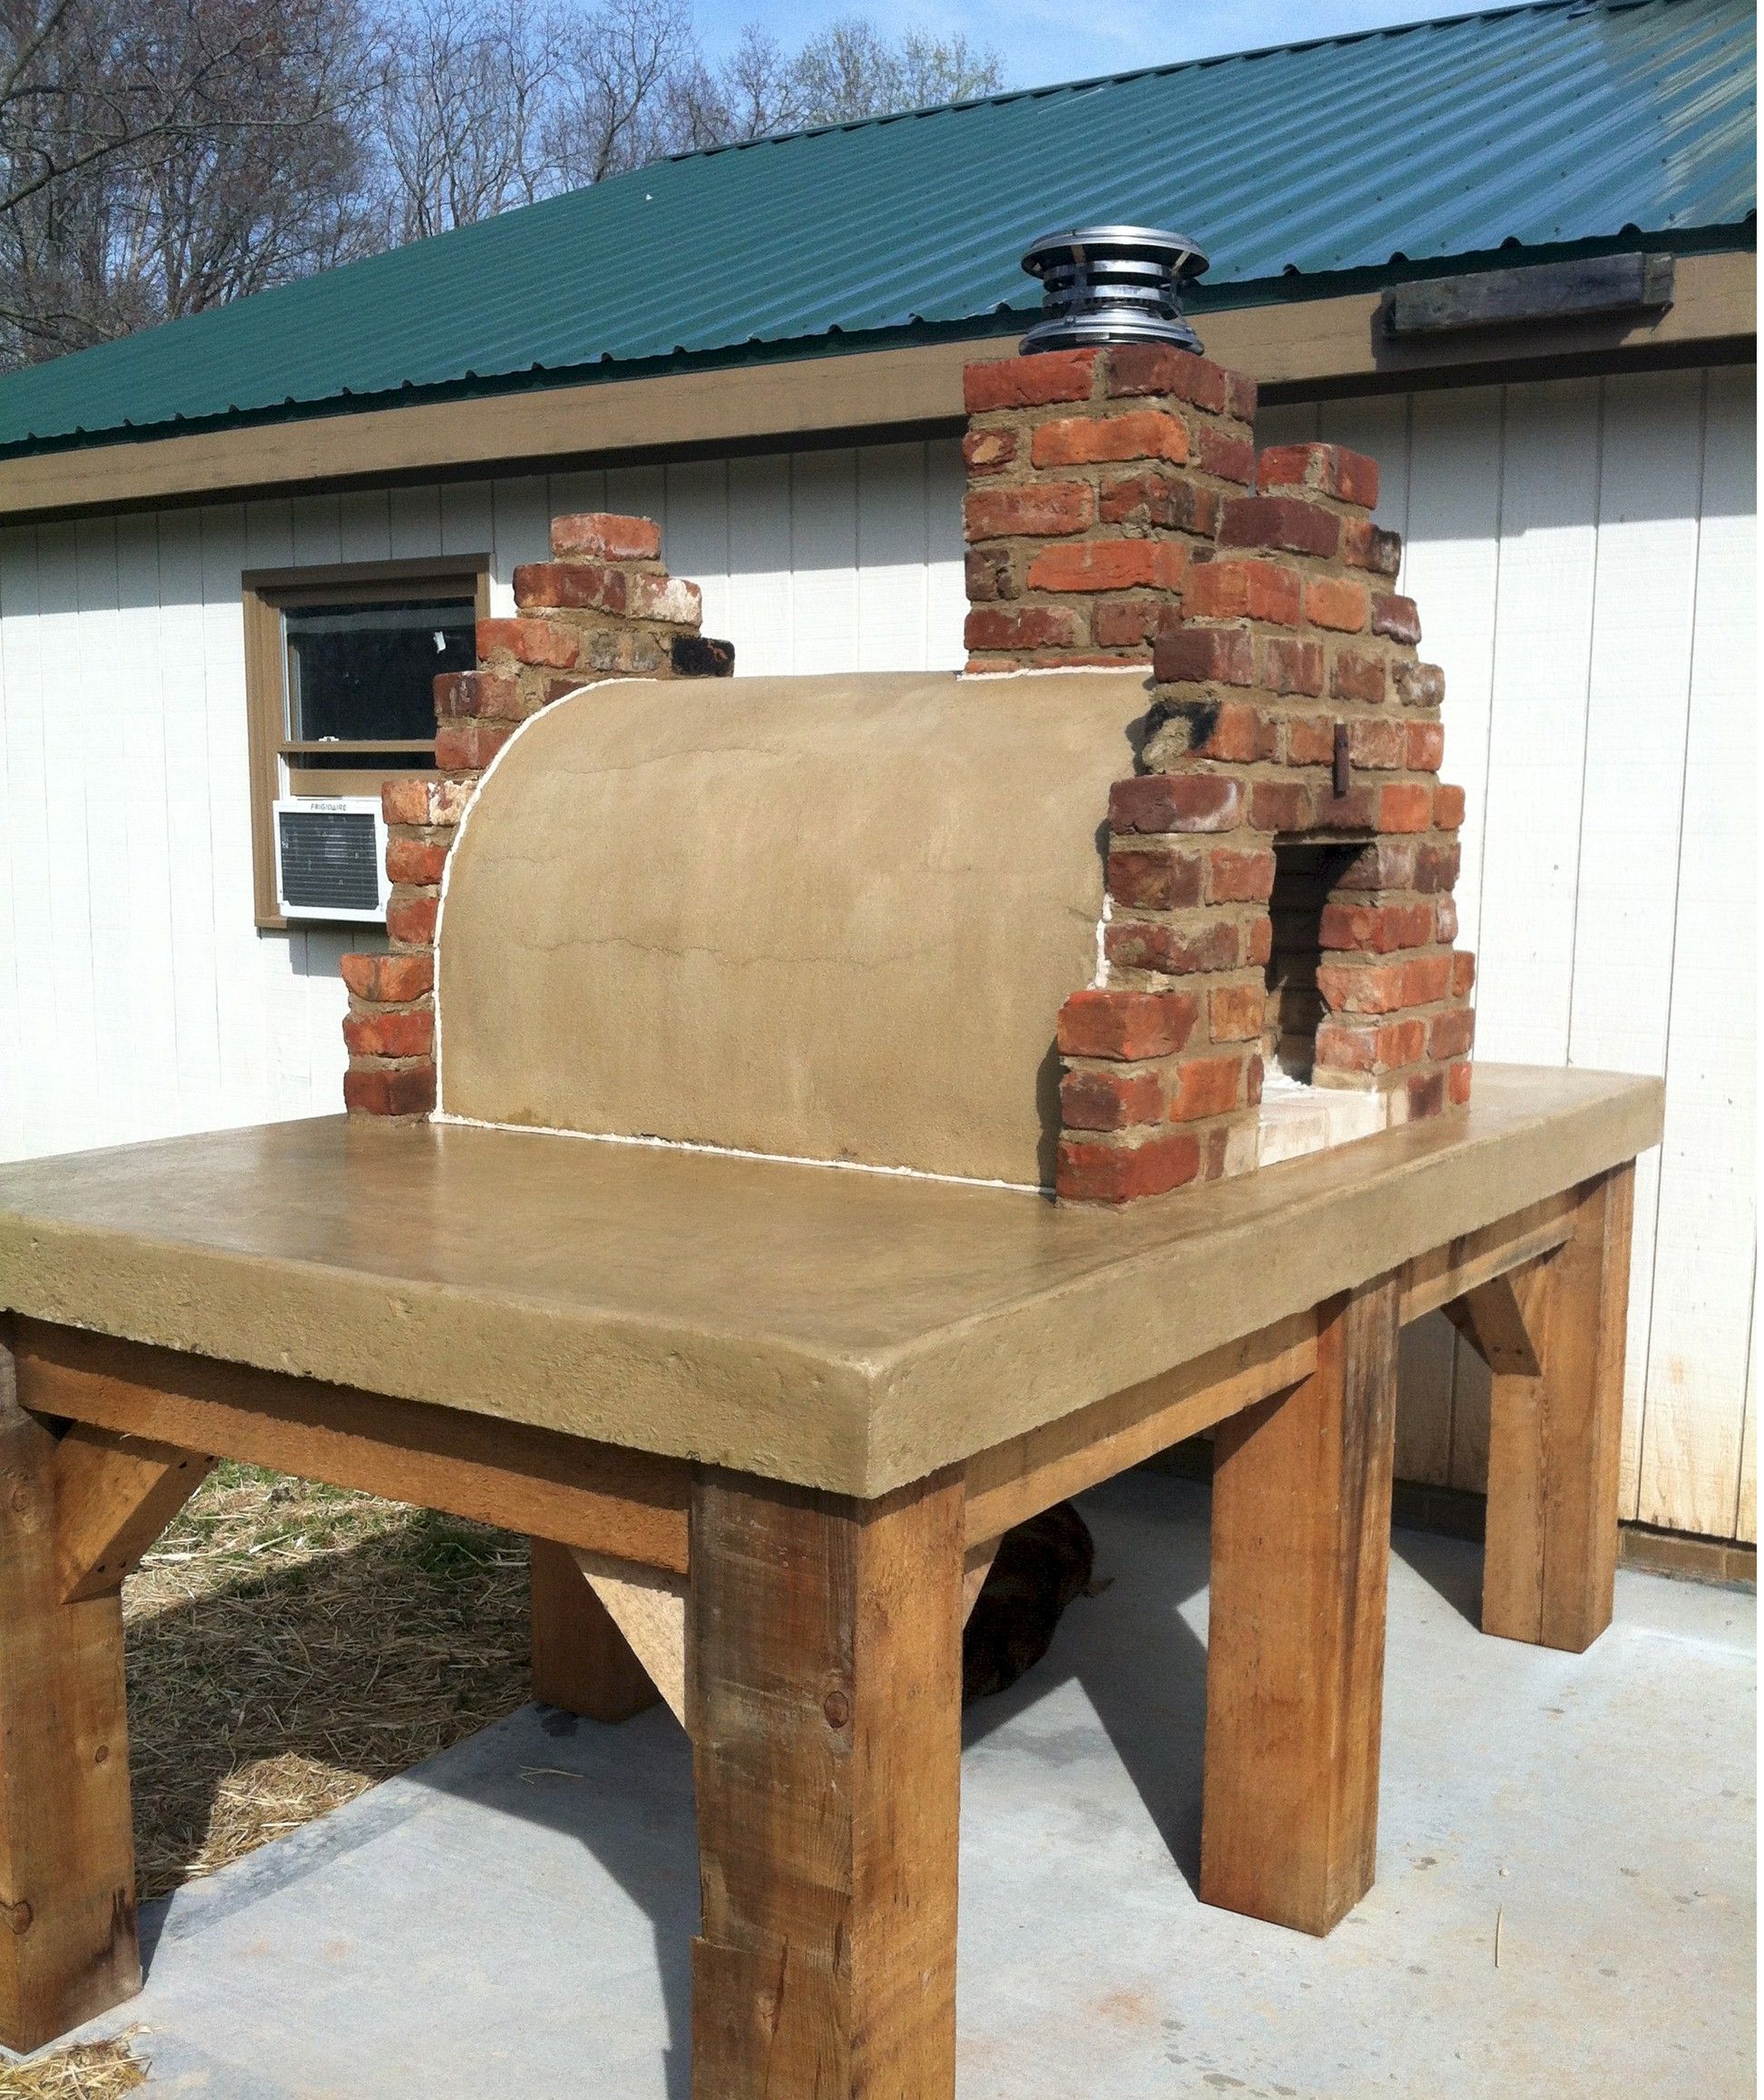 This awesome wood-fired brick pizza oven was the Mattone ...